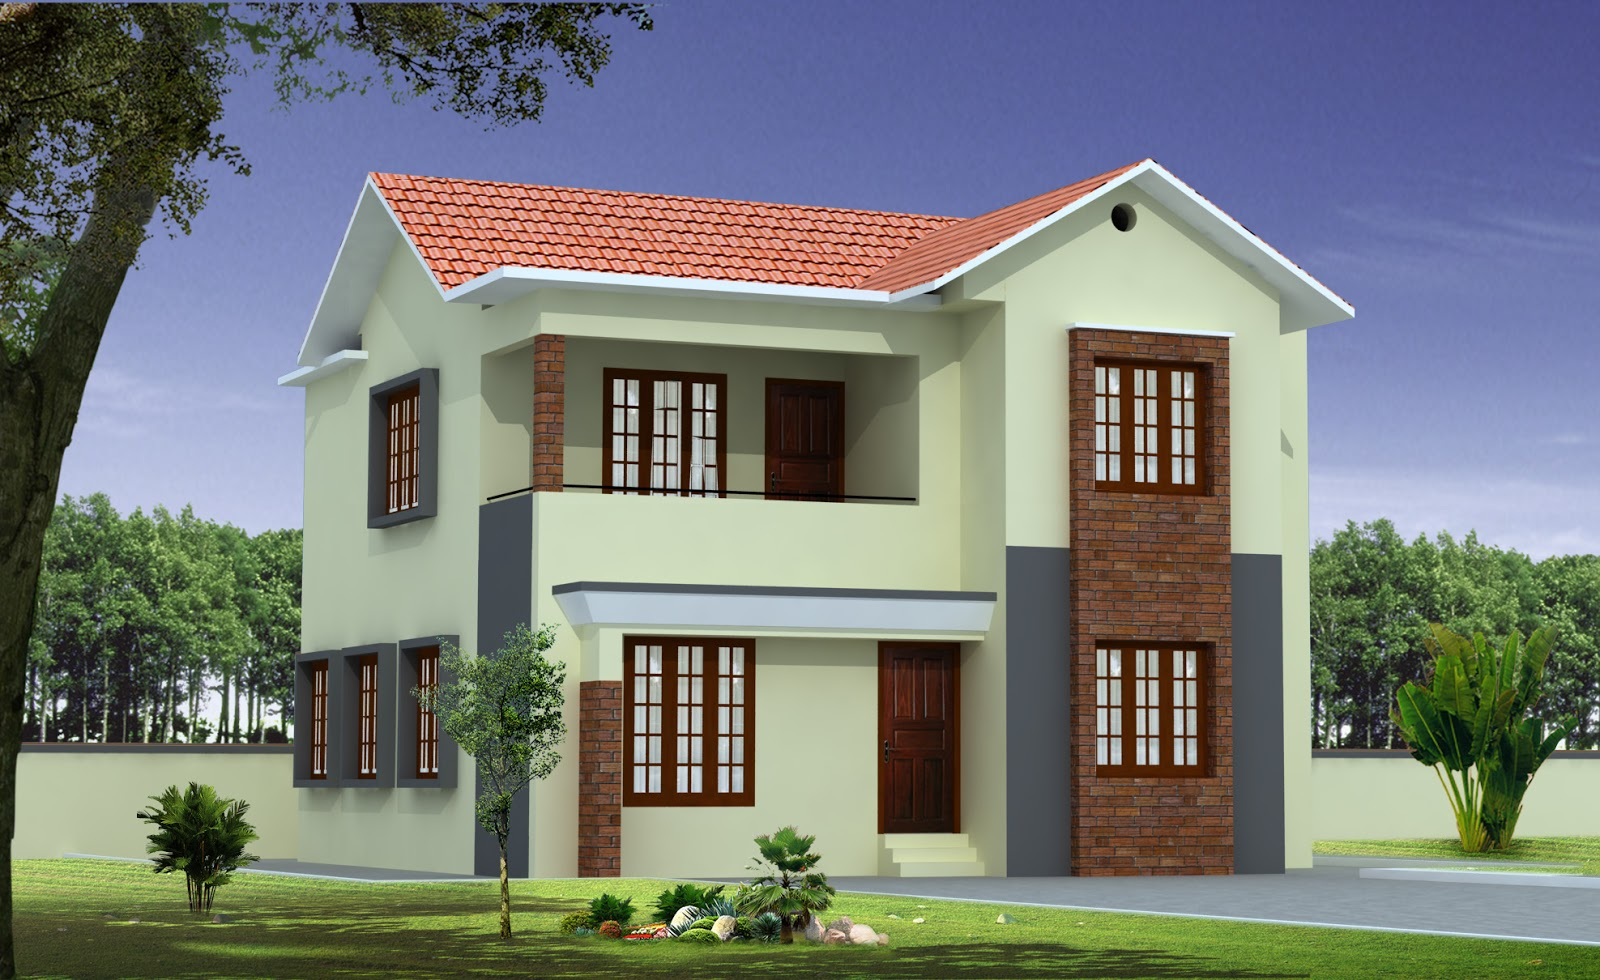 Build a building latest home designs for House design images